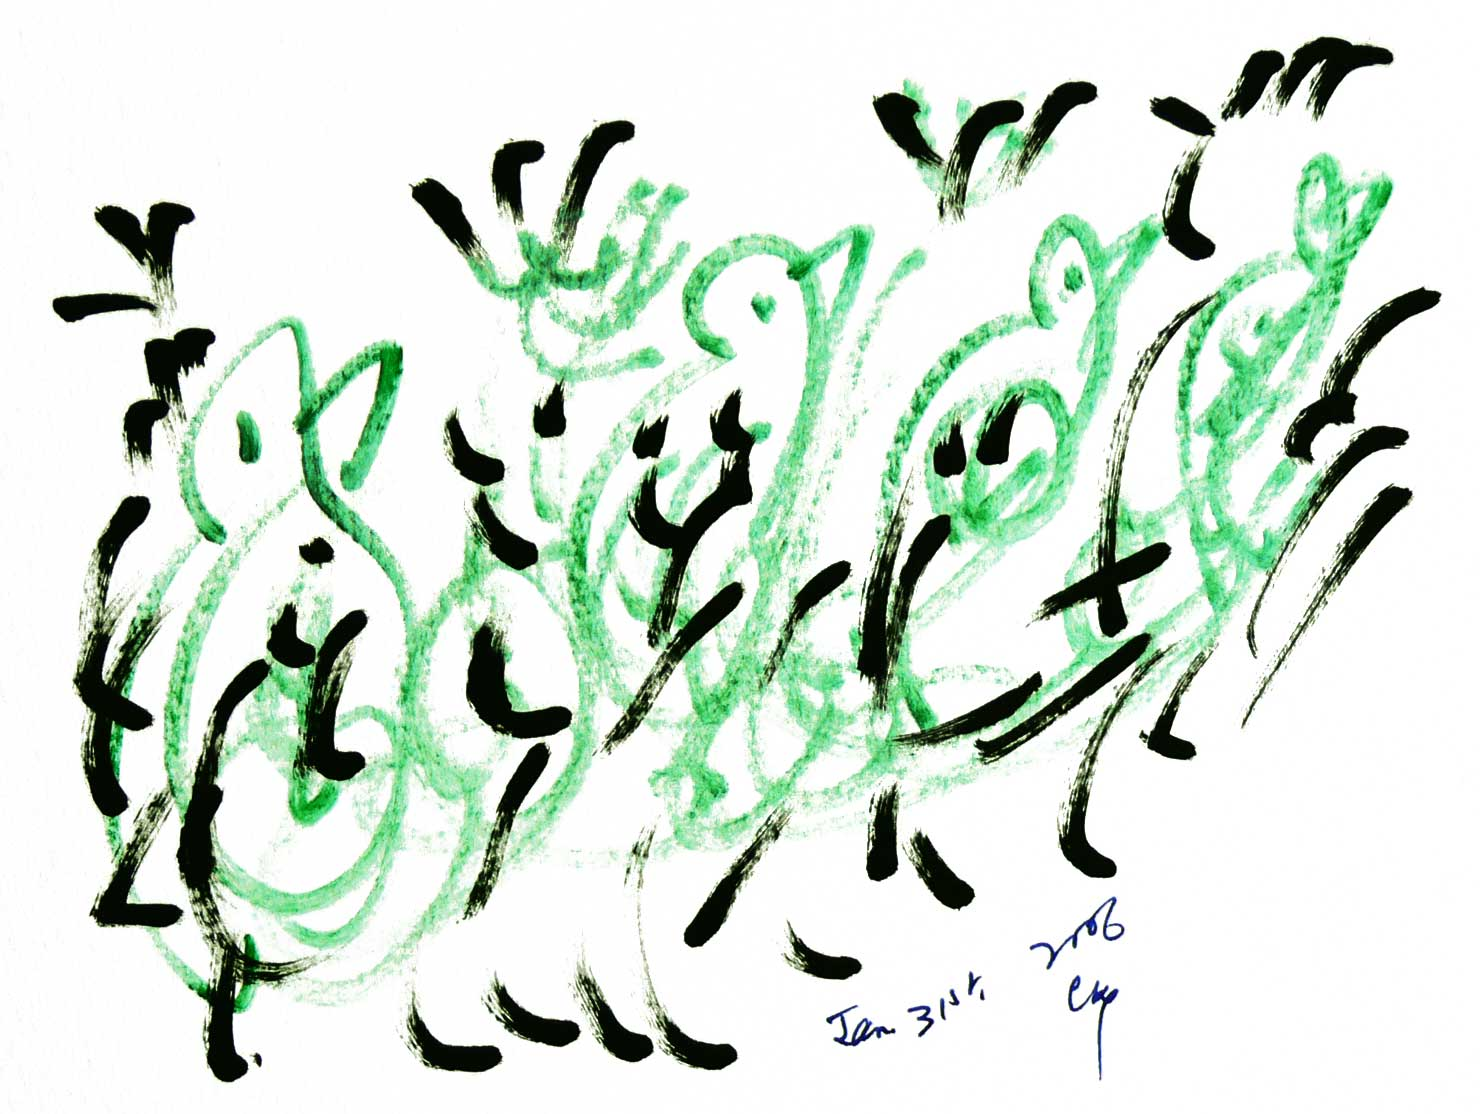 Bird-Drawing-by-Sri-Chinmoy-31-1-2006-4